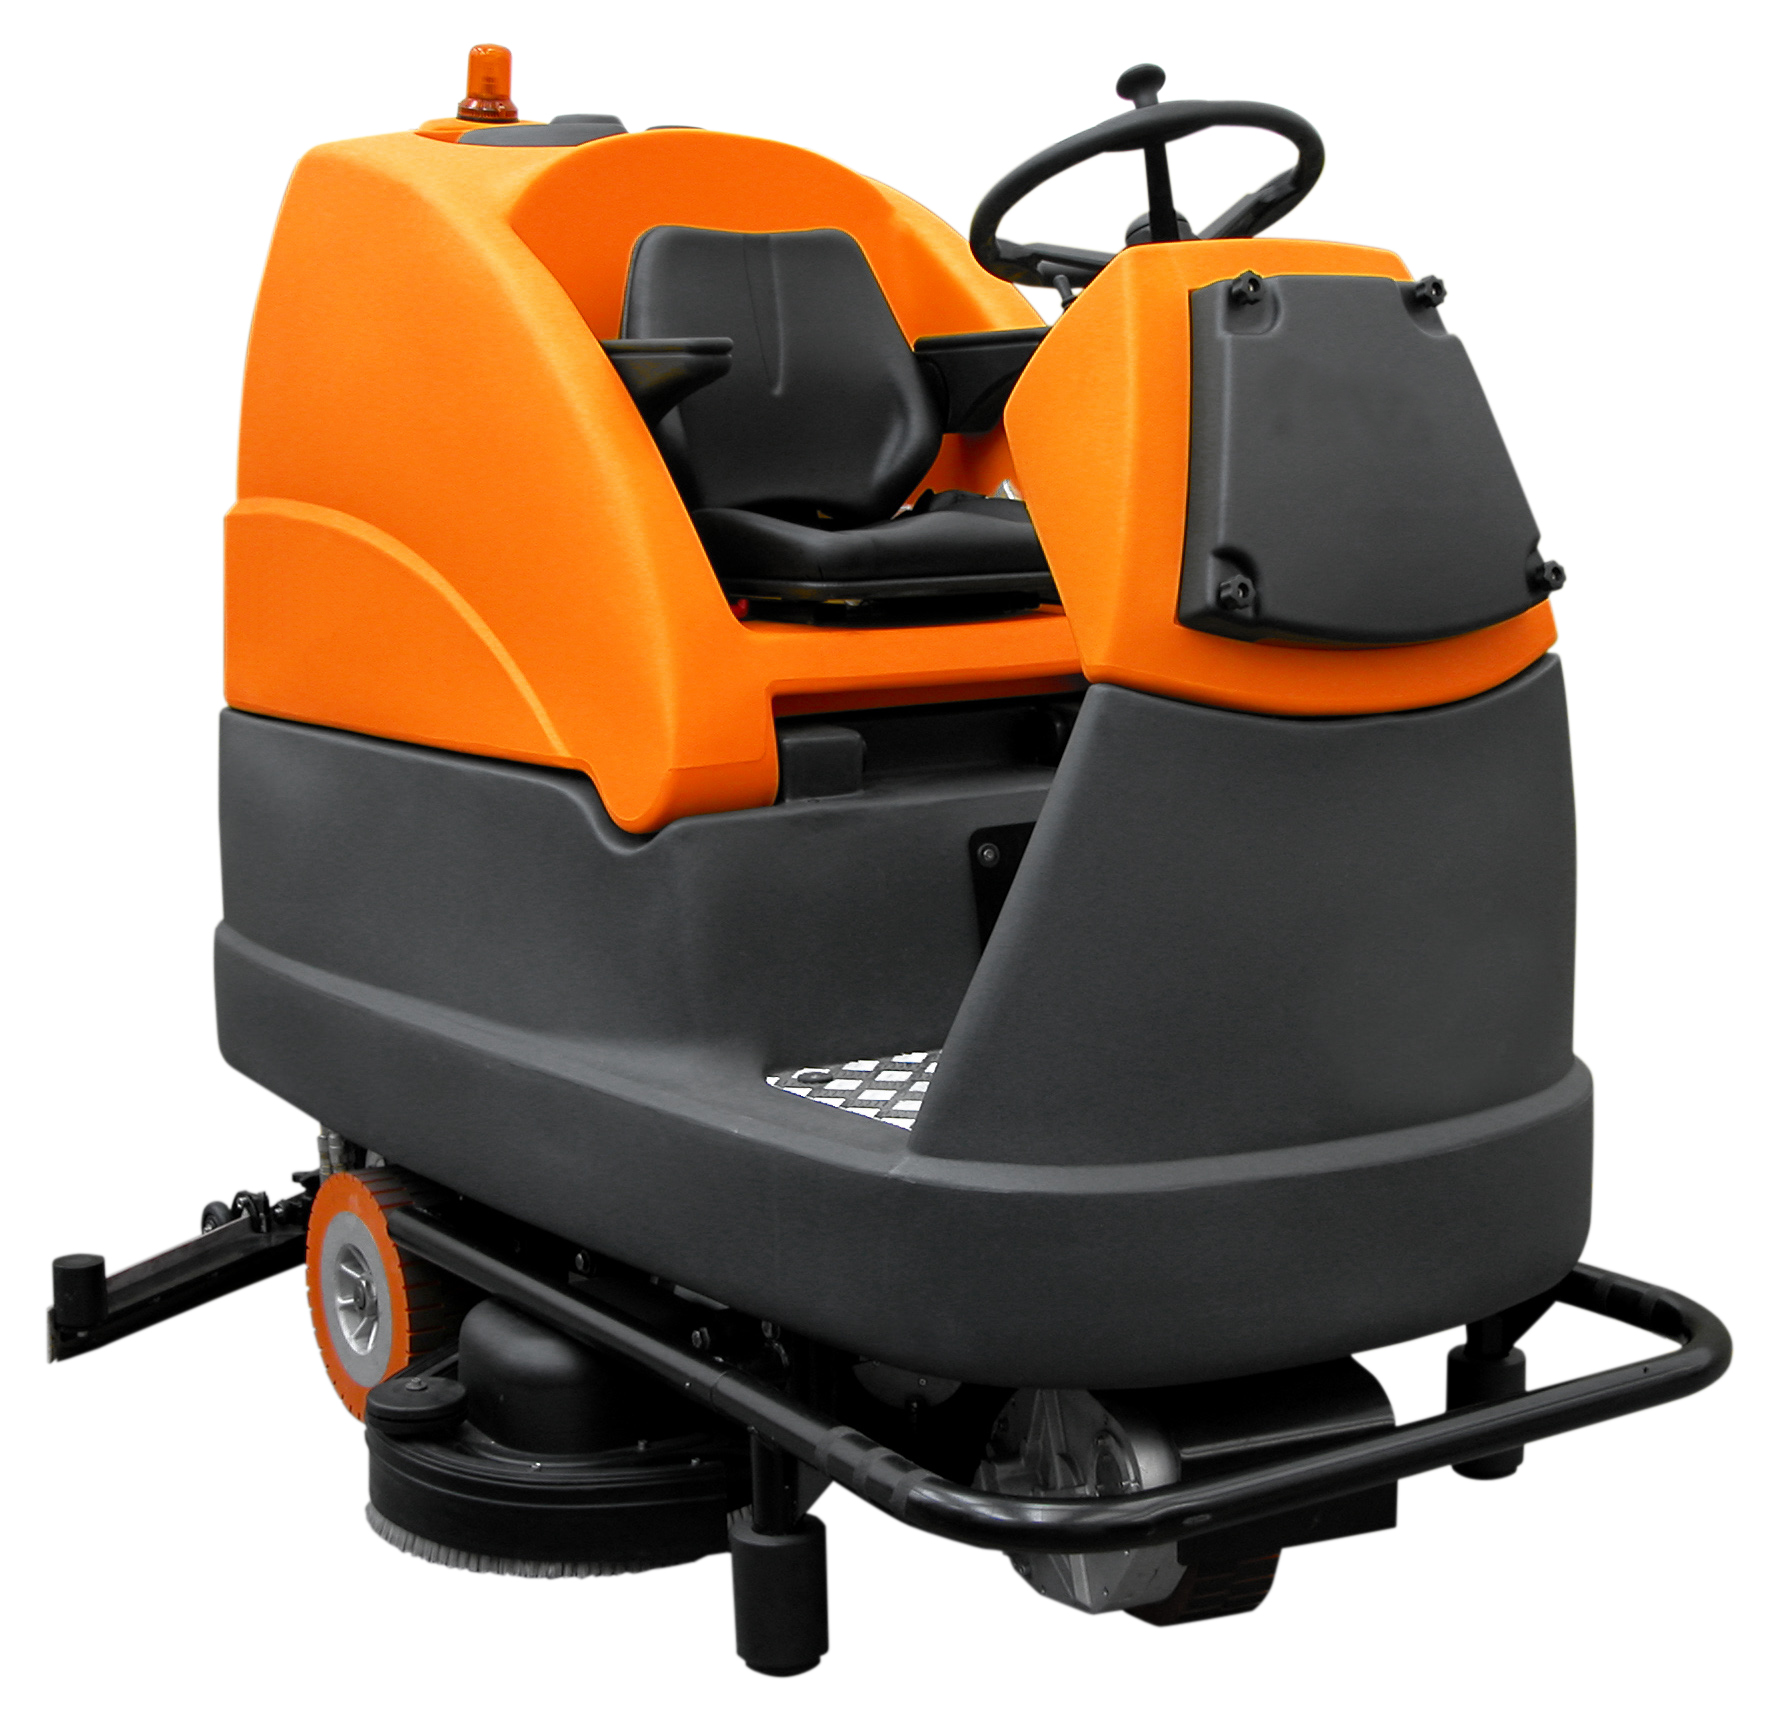 Stunning Floor Cleaning Machines Ideas – Home Gallery Image and Wallpaper